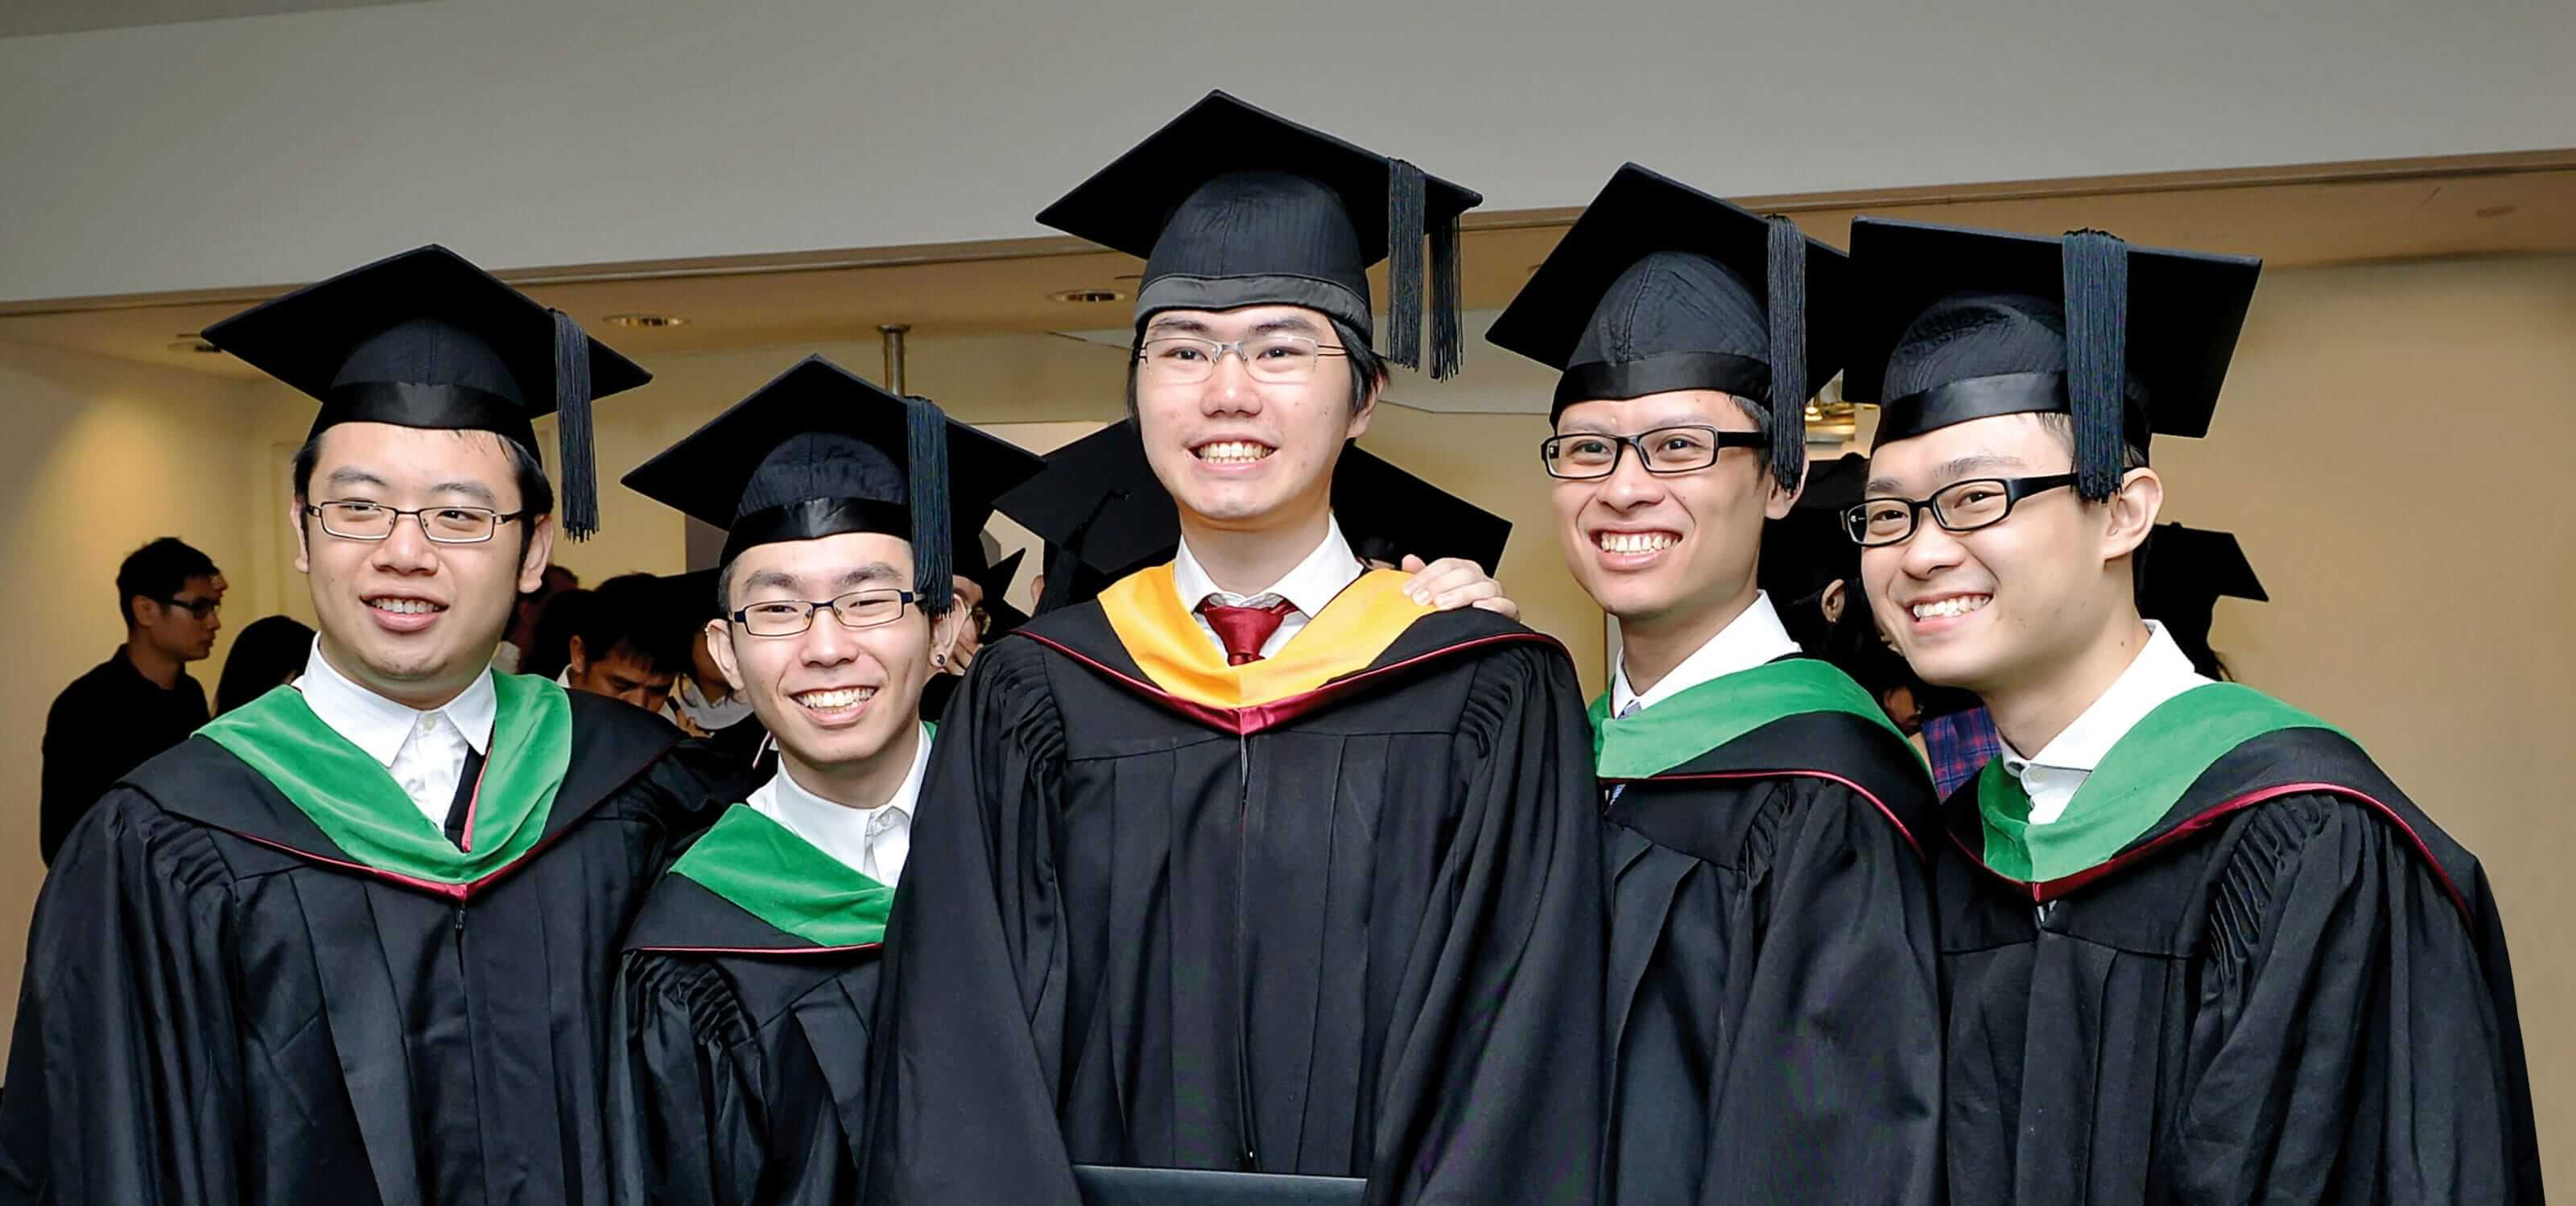 A group of DigiPen (Singapore) graduates smiling proudly at Commencement